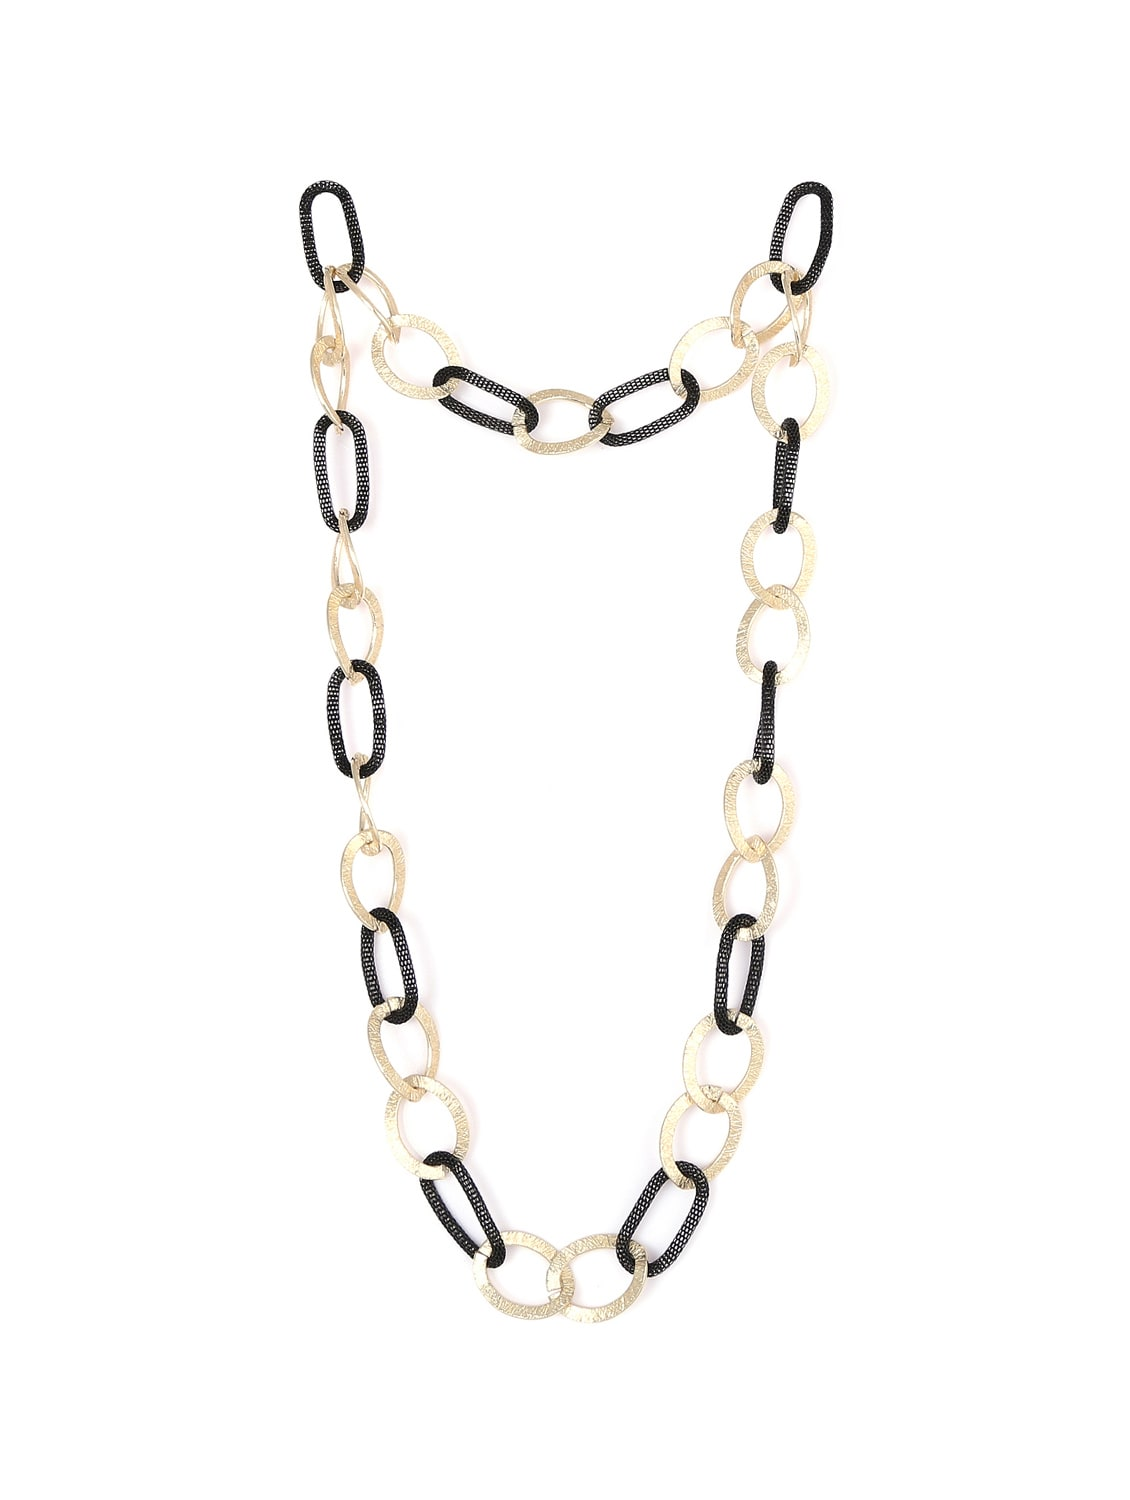 Black & Gold Interlocked Chain Necklace - F.A.D.